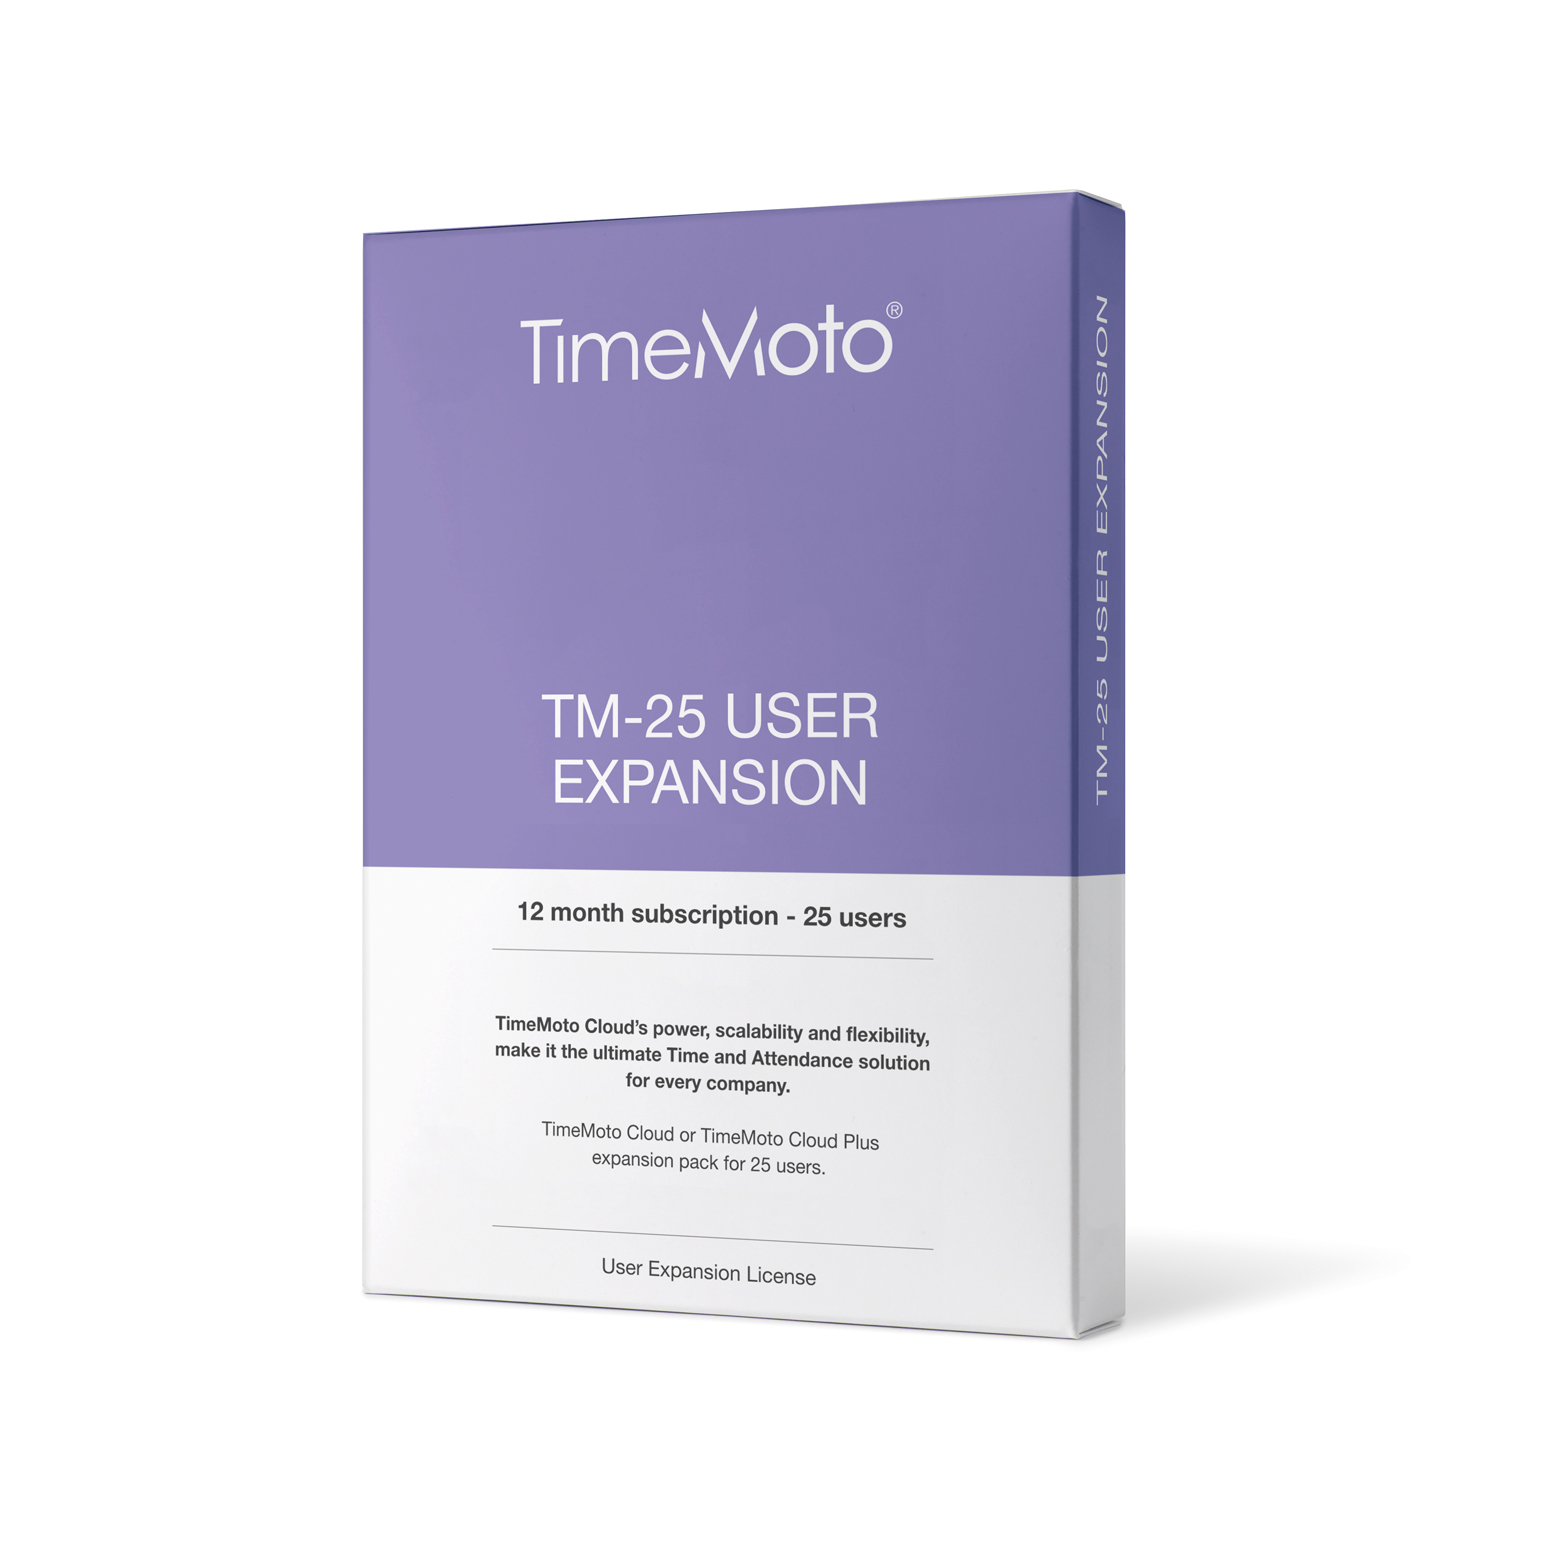 Human resources software TimeMoto by Safescan TM-25 Cloud User Expansion 25 Users Ref 139-0592